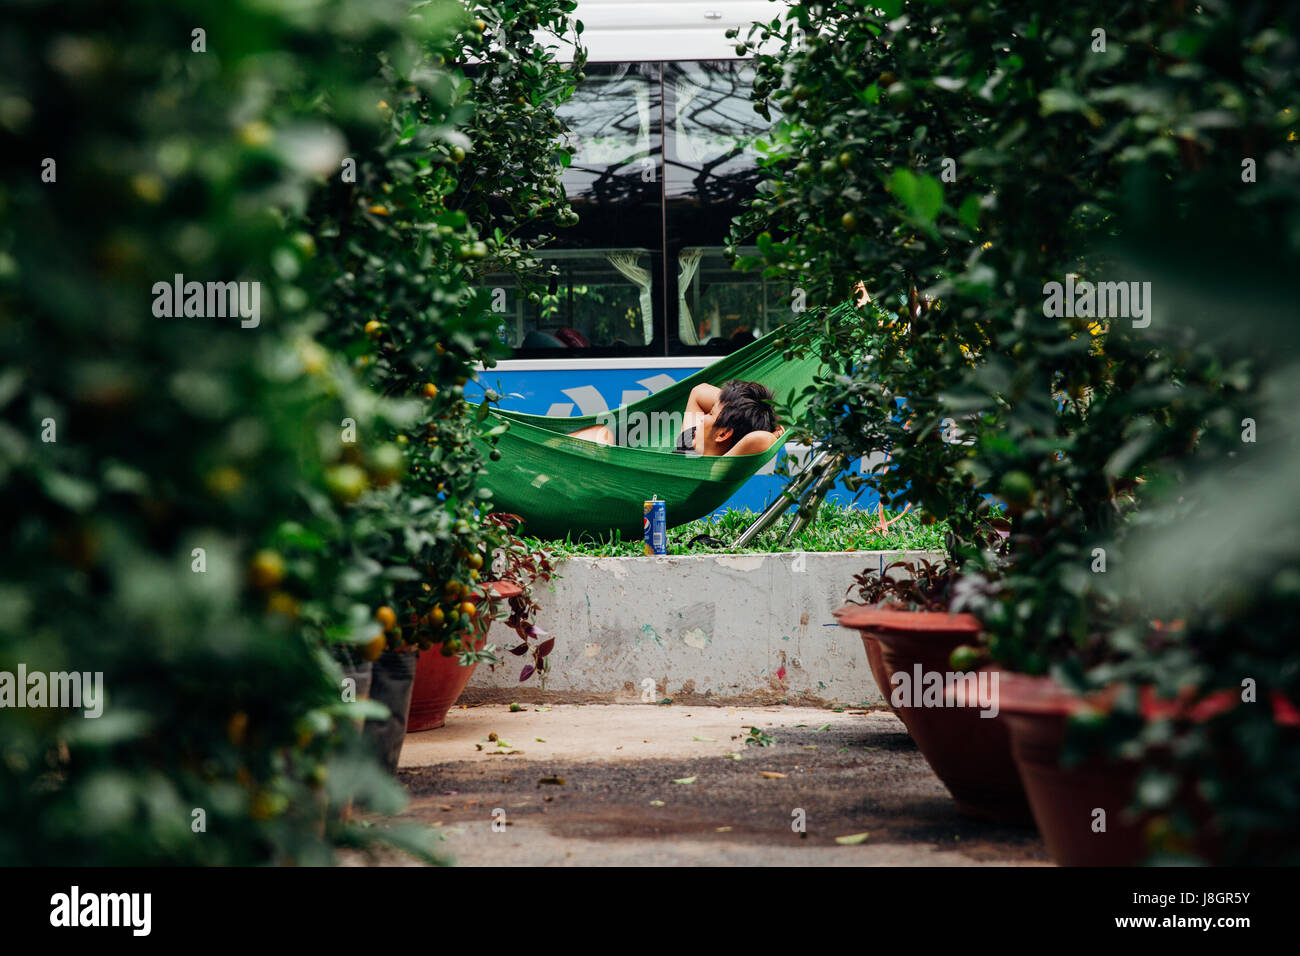 Ho Chi Minh City, Vietnam - February 06, 2016: Holiday trees vendor rests at the street market during Tet or Lunar - Stock Image